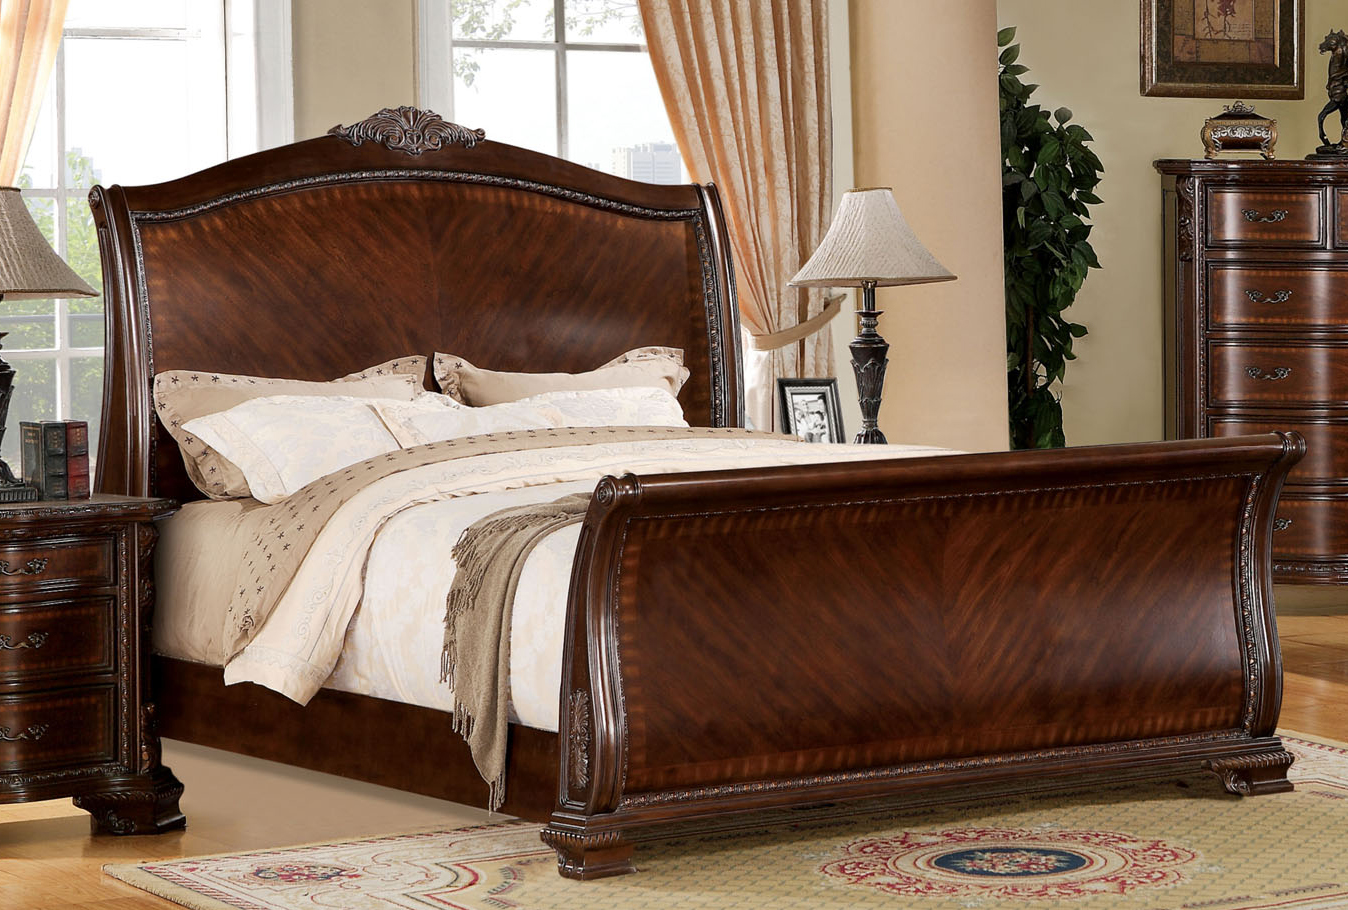 Furniture Of America Penbroke Traditional Brown Cherry Tone Cal King Sleigh Bed by Furniture of America